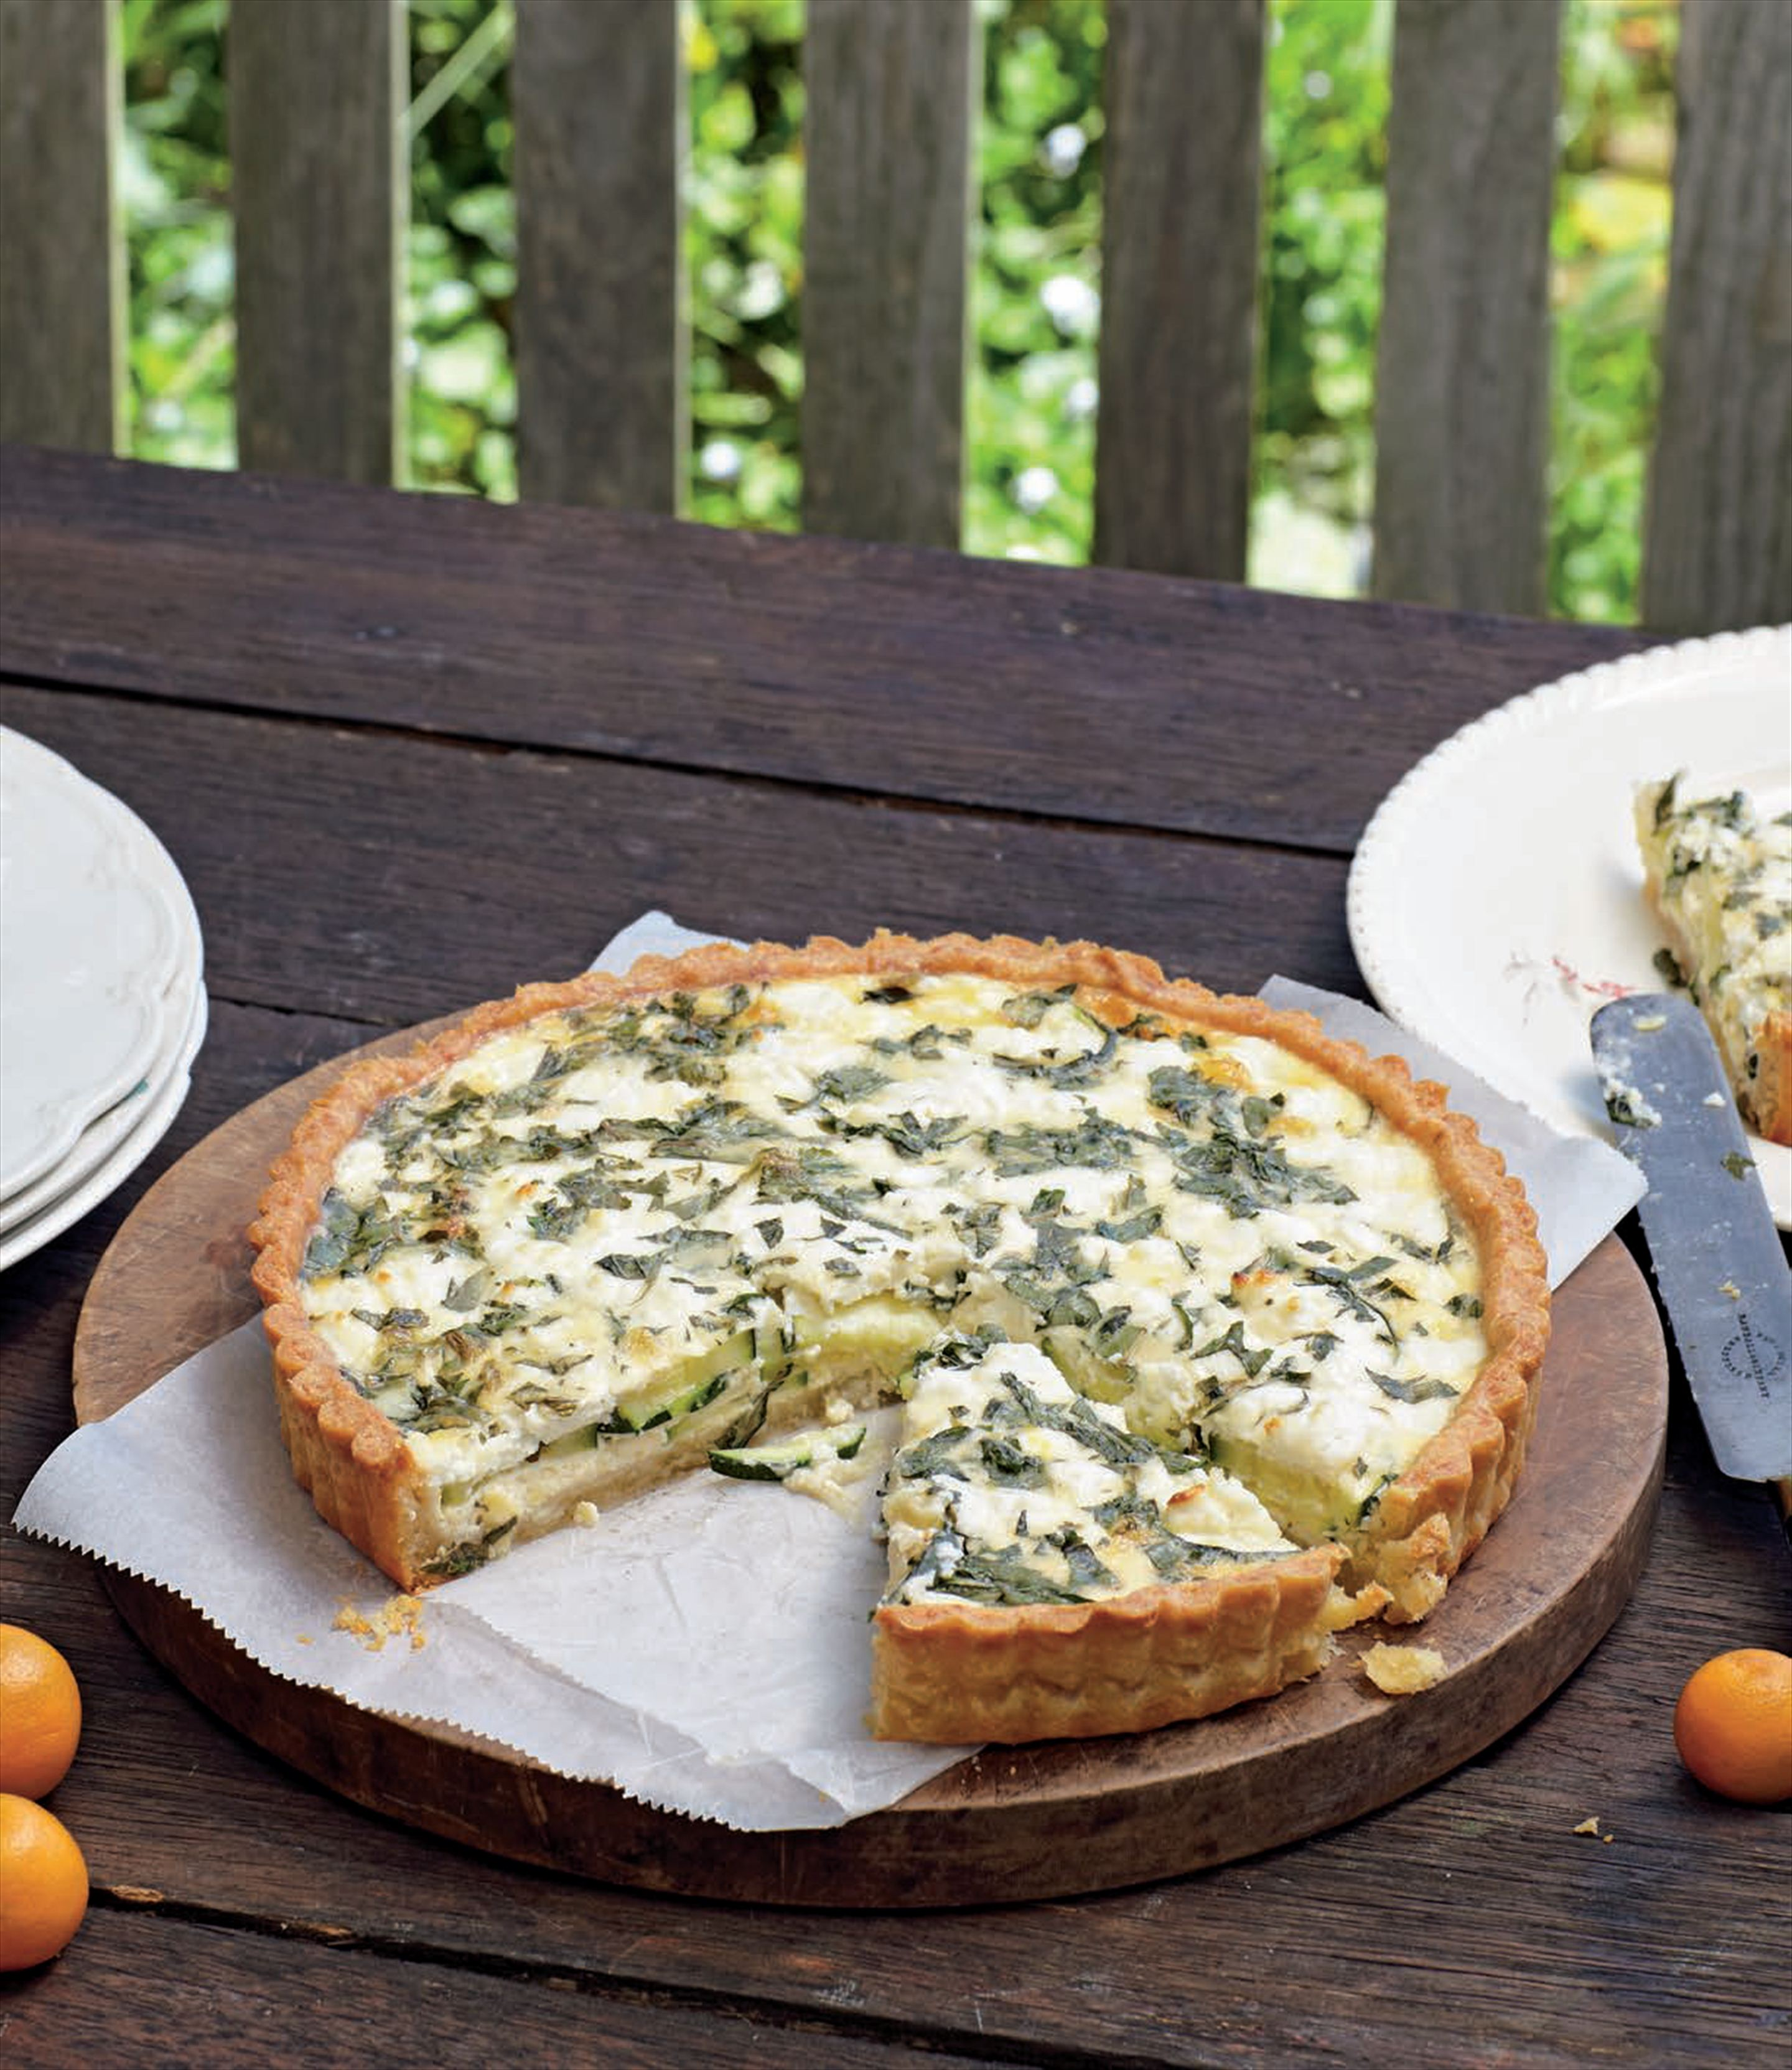 Zucchini, mint & goat's cheese quiche